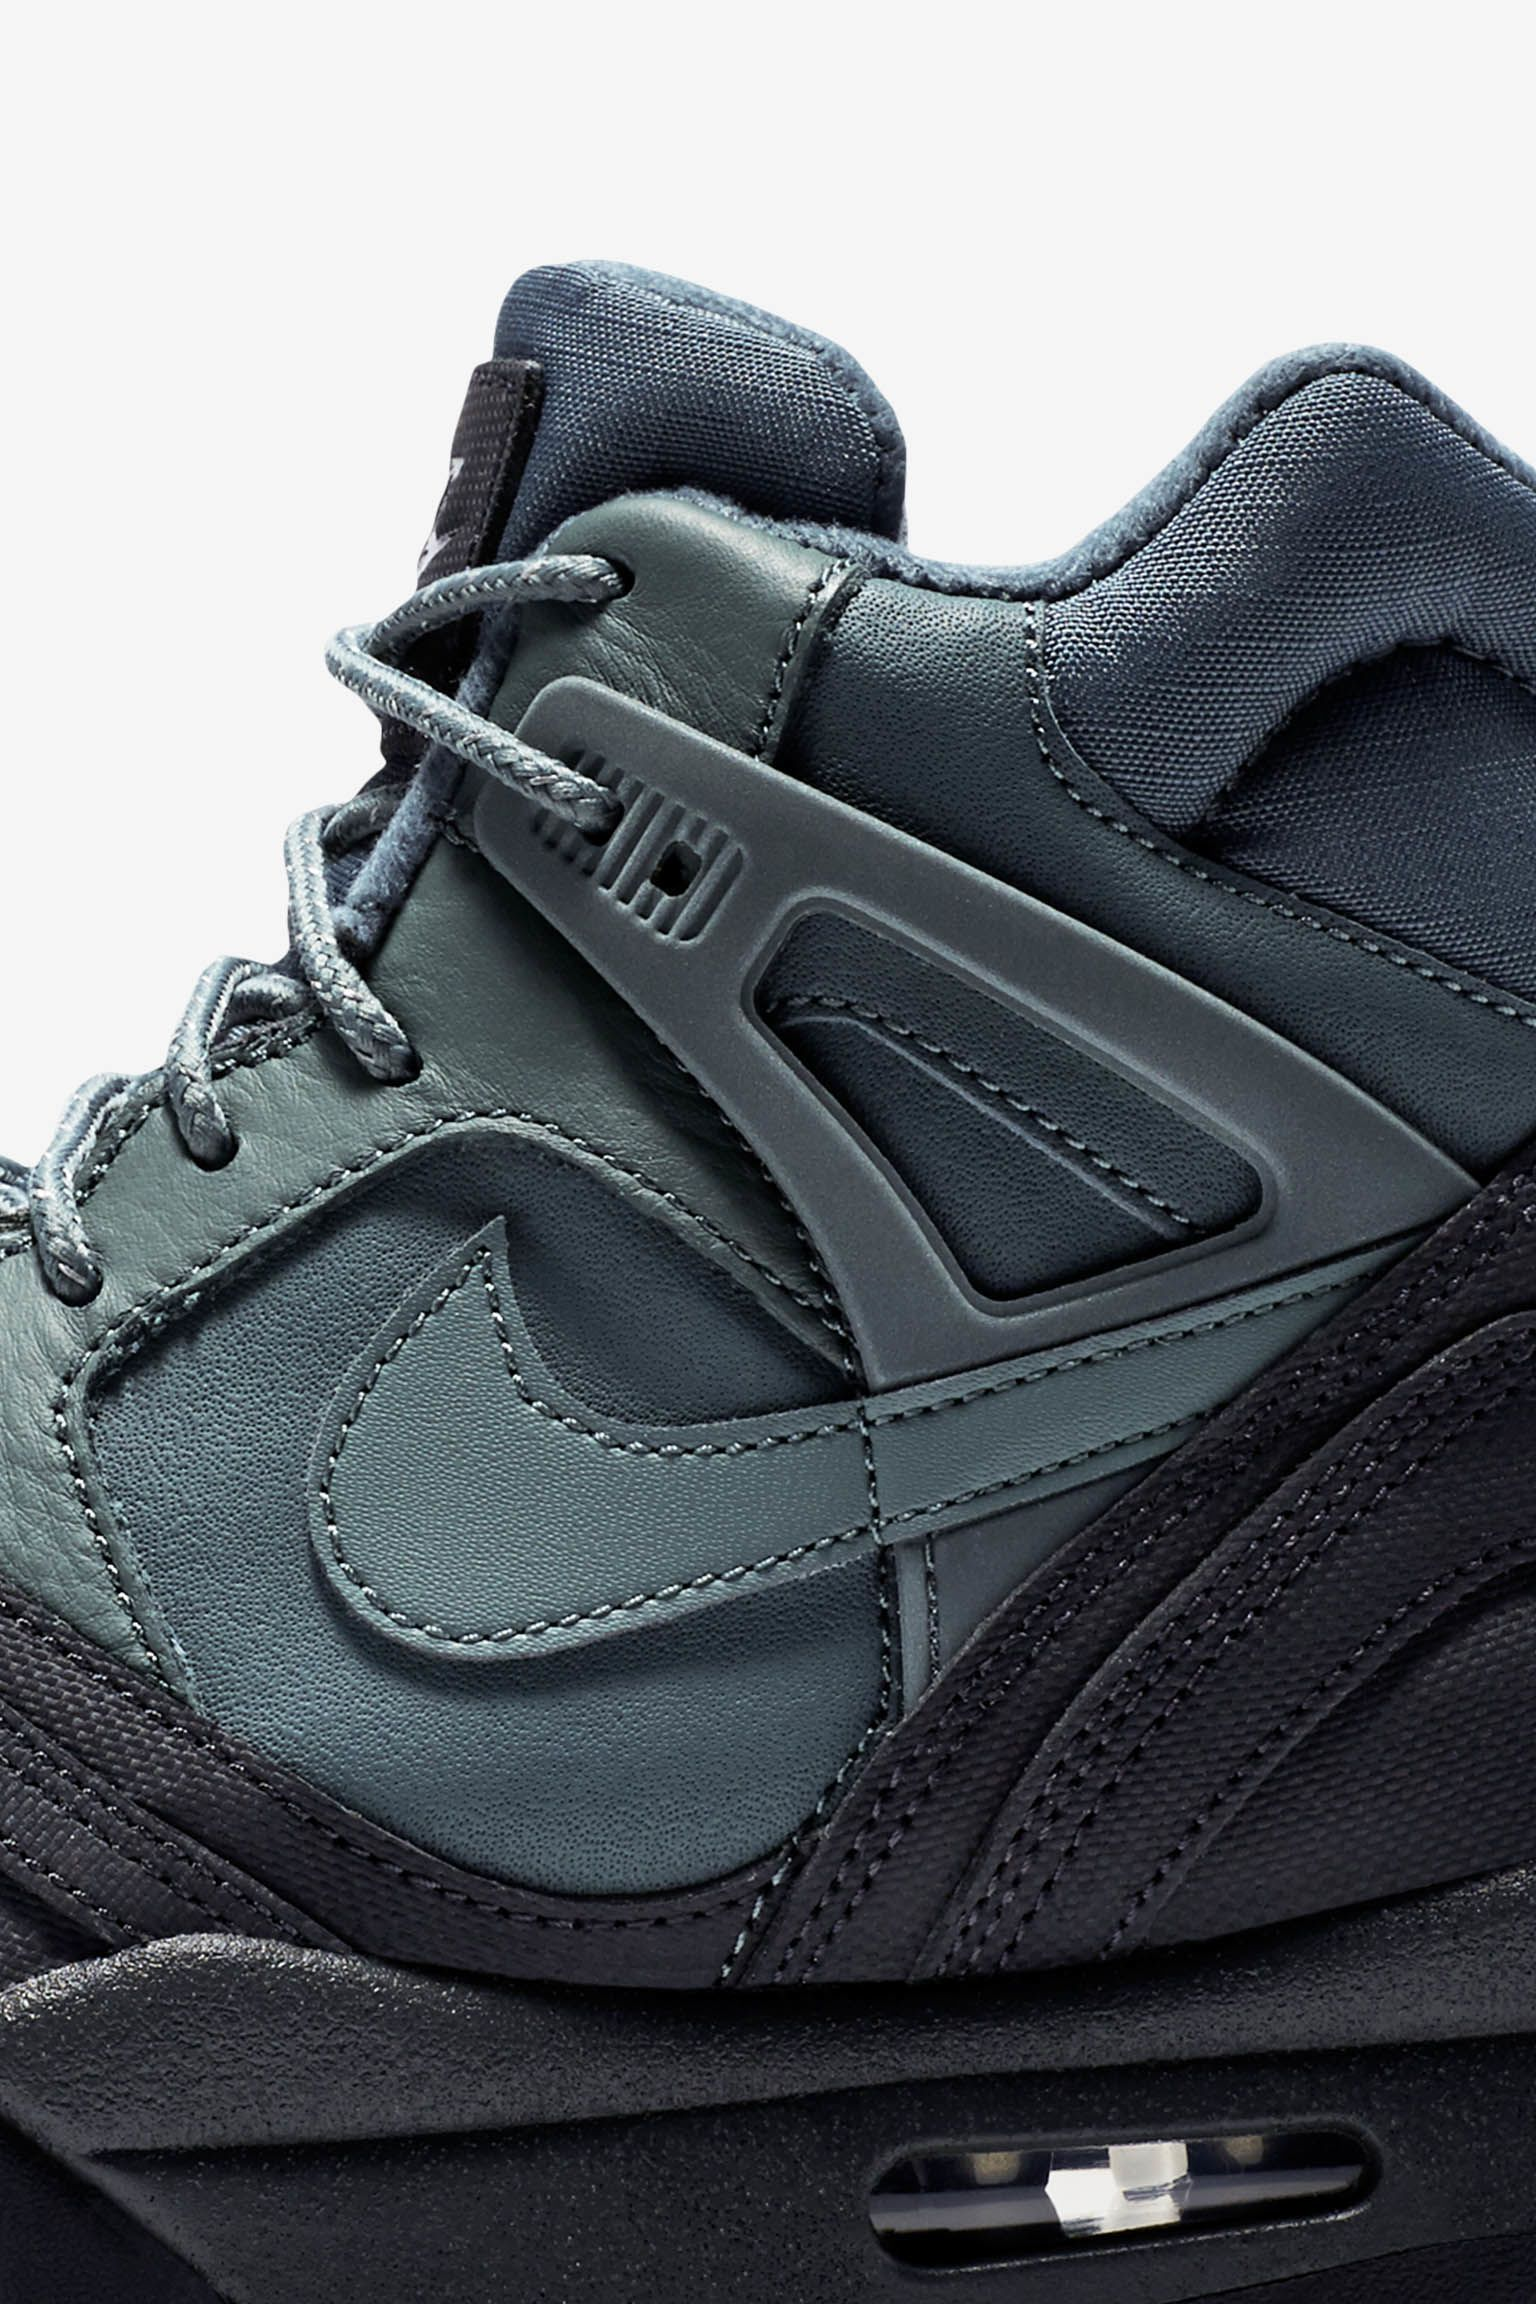 Nike Air Tech Challenge II 'Hasta & Anthracite'